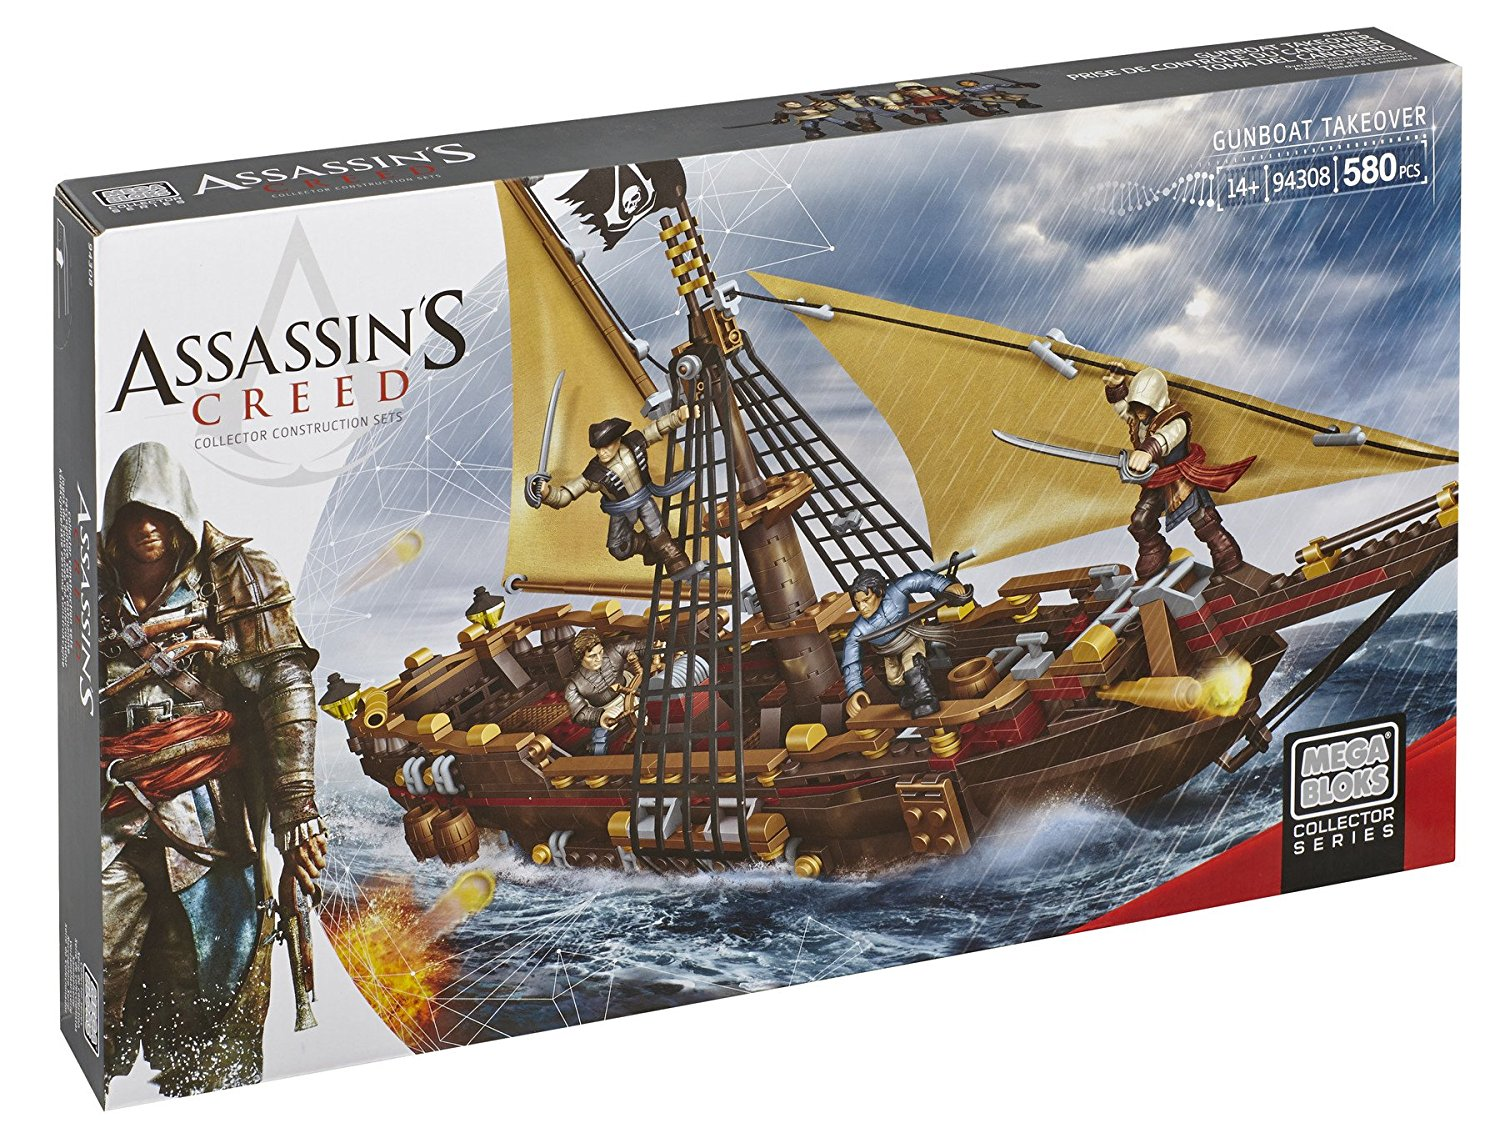 Assassin's Creed Gunboat Takeover, One Assassin Edward and three allied forces micro... by